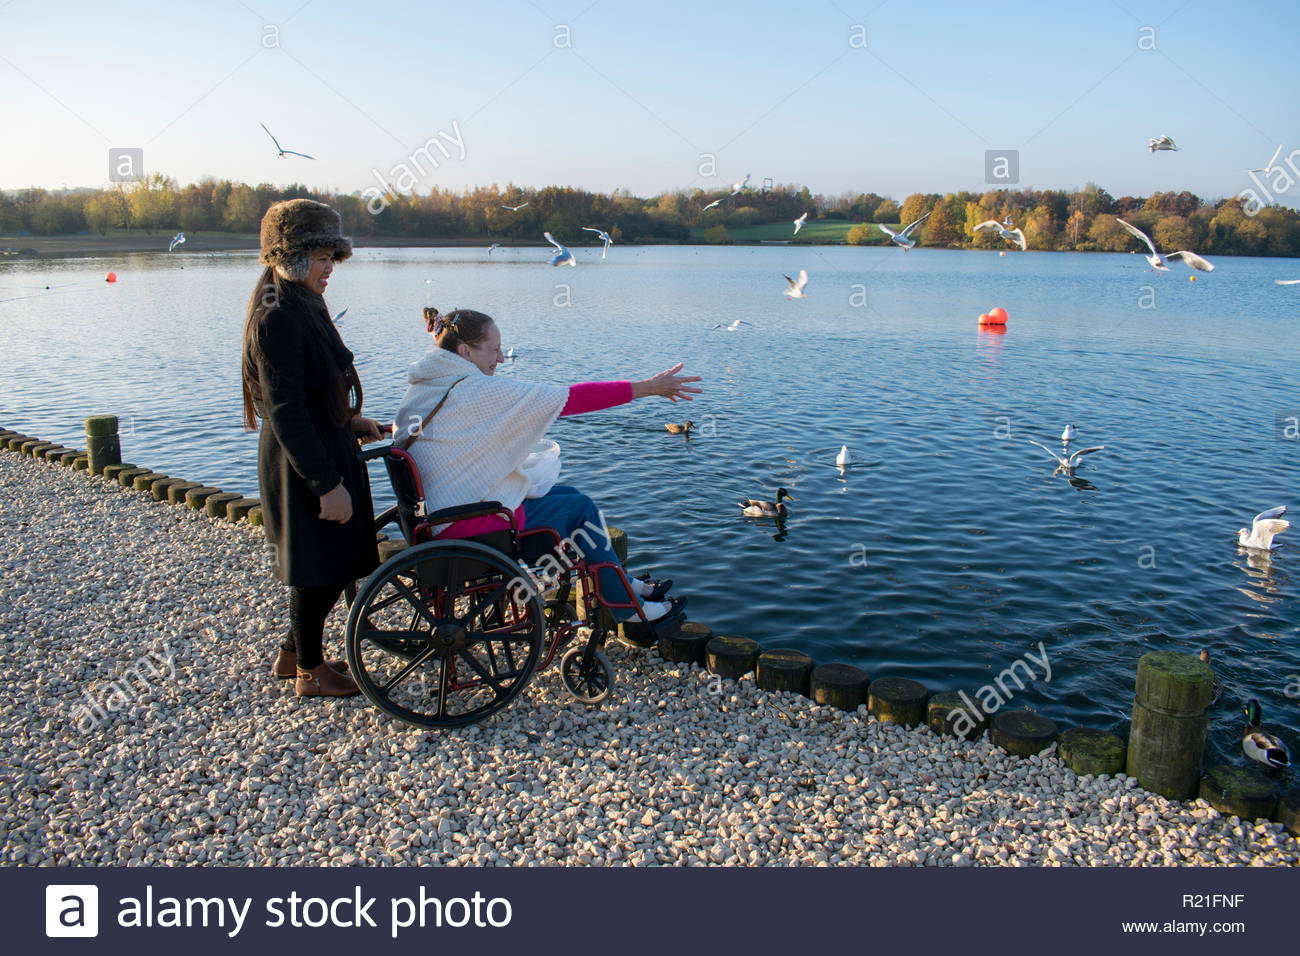 A Disabled Female in her Wheelchair and her Carer Feeding the Birds at Lake Stock Photo